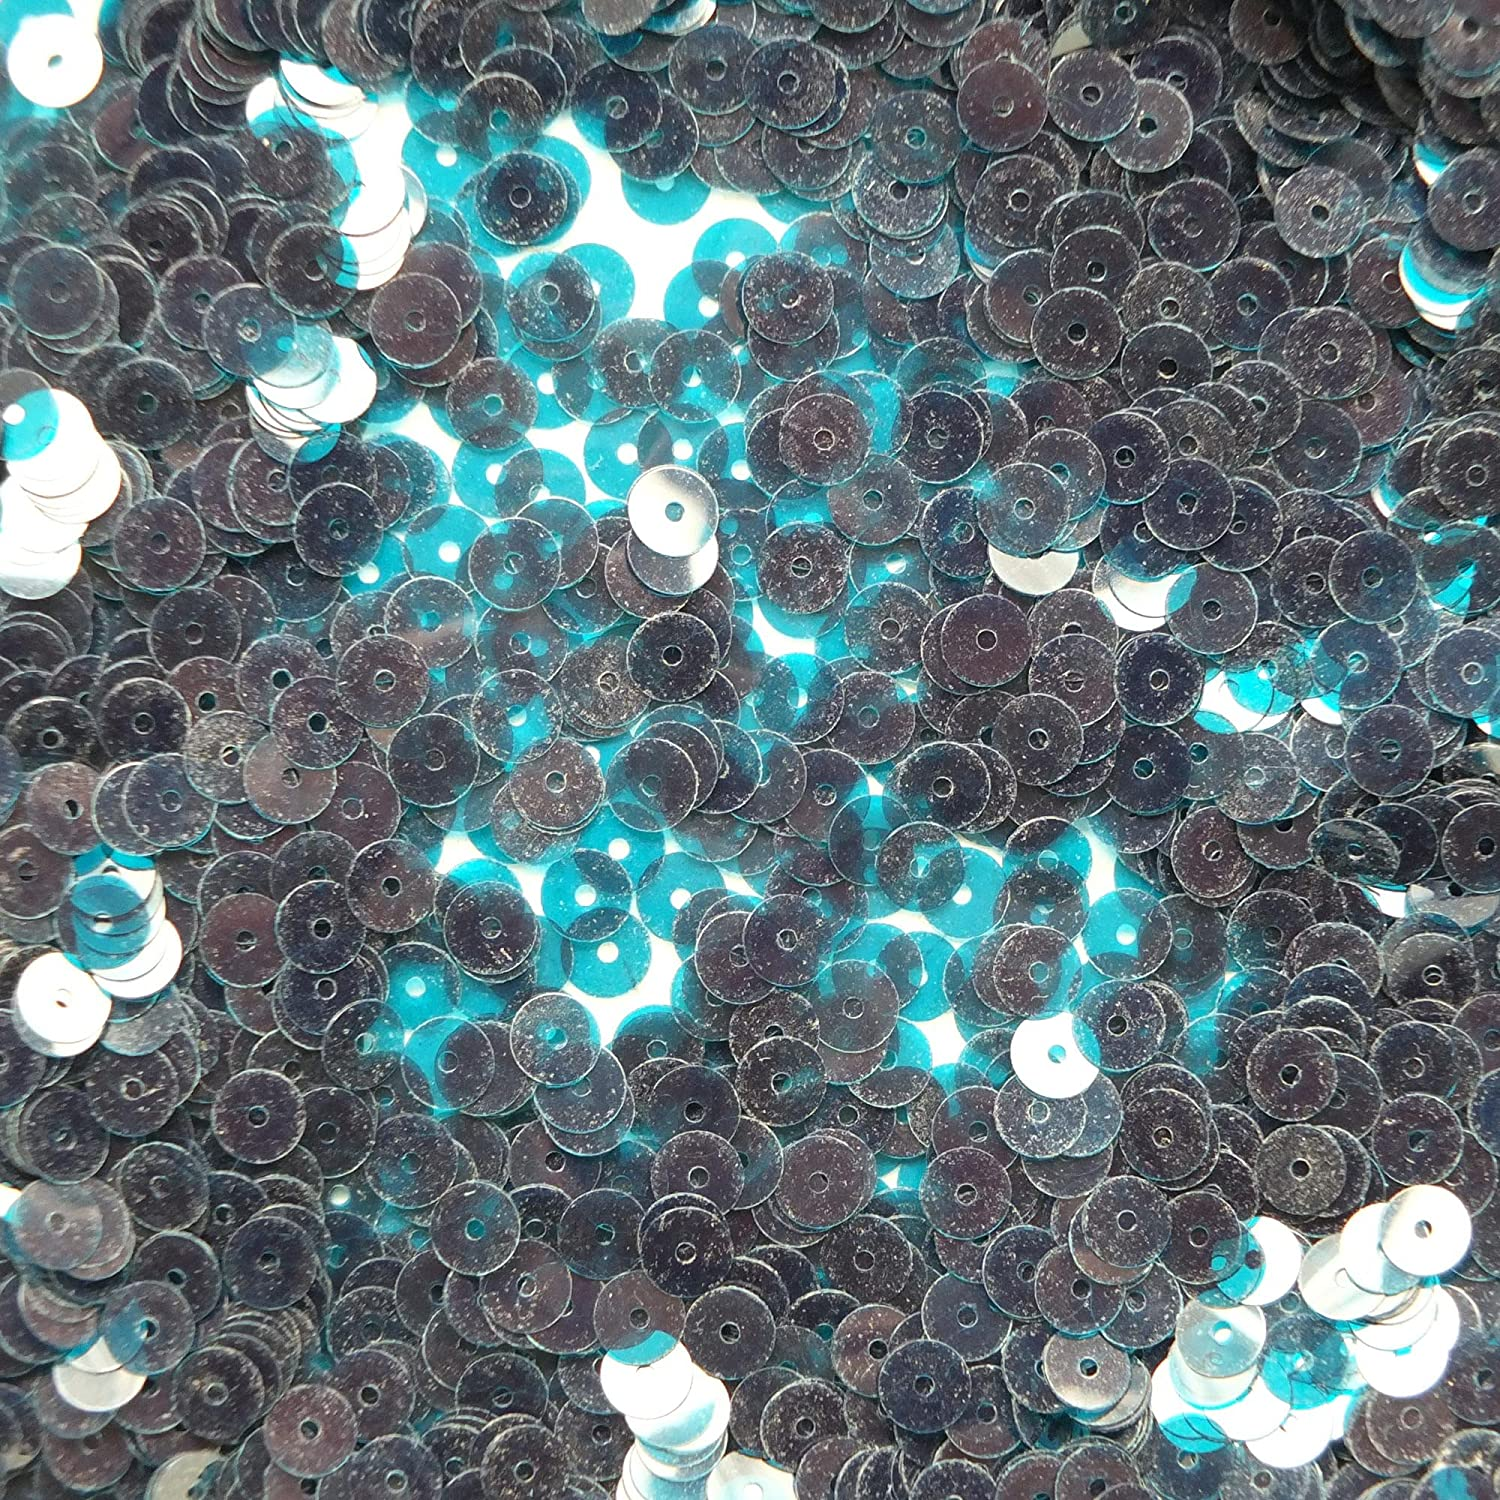 6mm Flat Round Sequins ~ Deep Turquoise Blue Transparent See-Thru ~ Made in USA. Loose paillettes for embroidery, bridal, applique, arts, crafts, and embellishment.